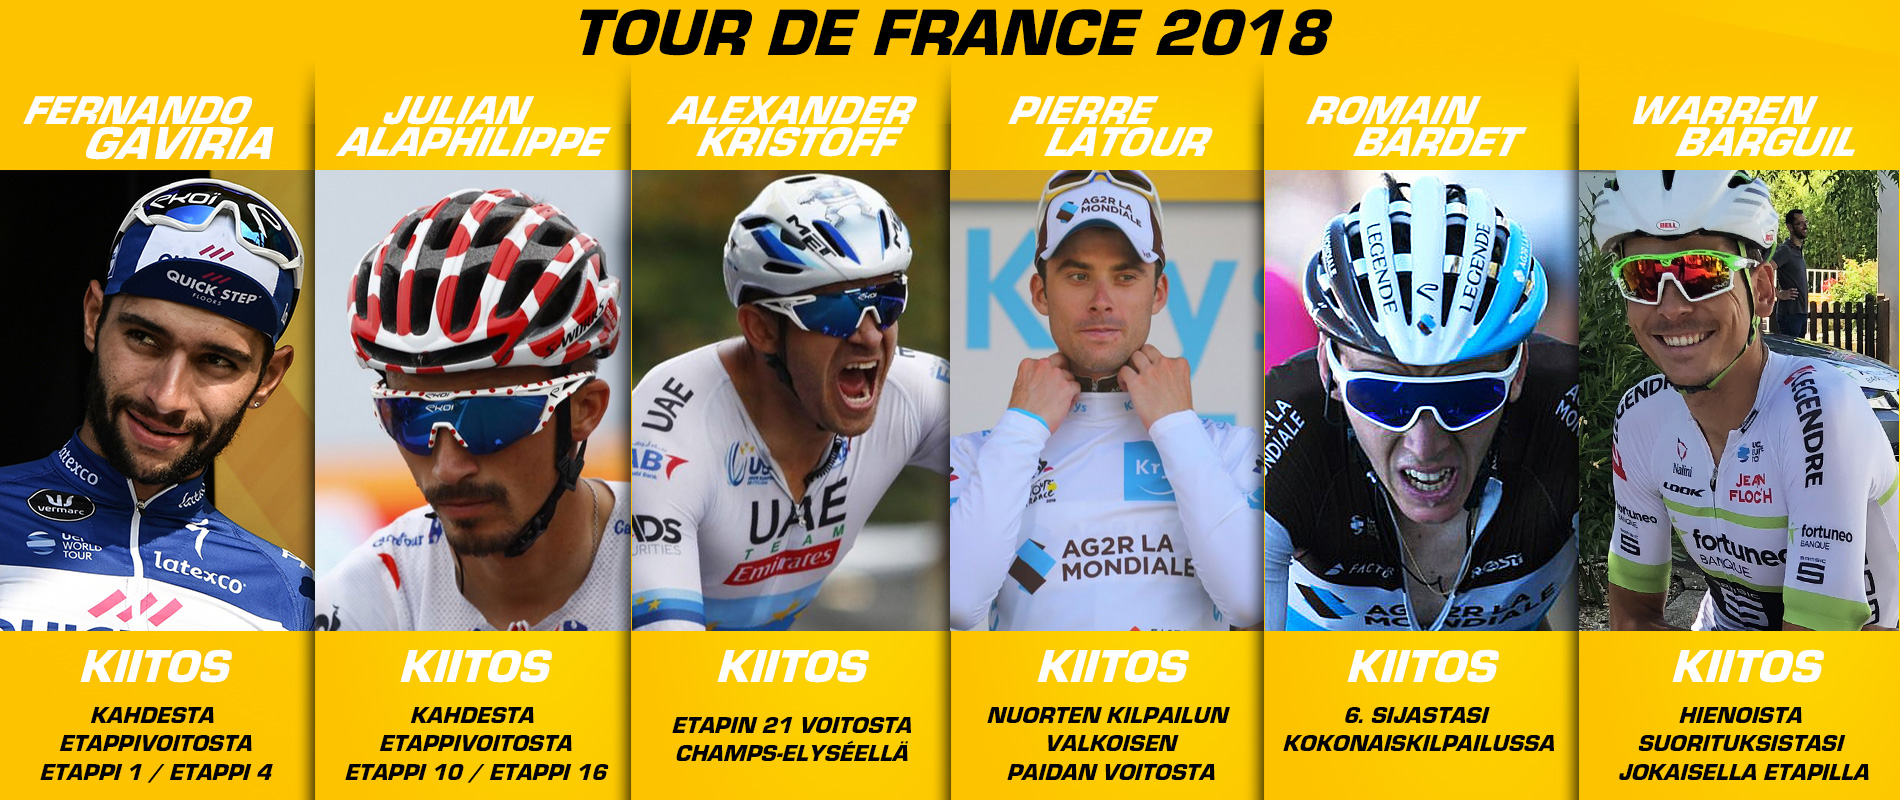 Tour de France 2018 Merci EKOI